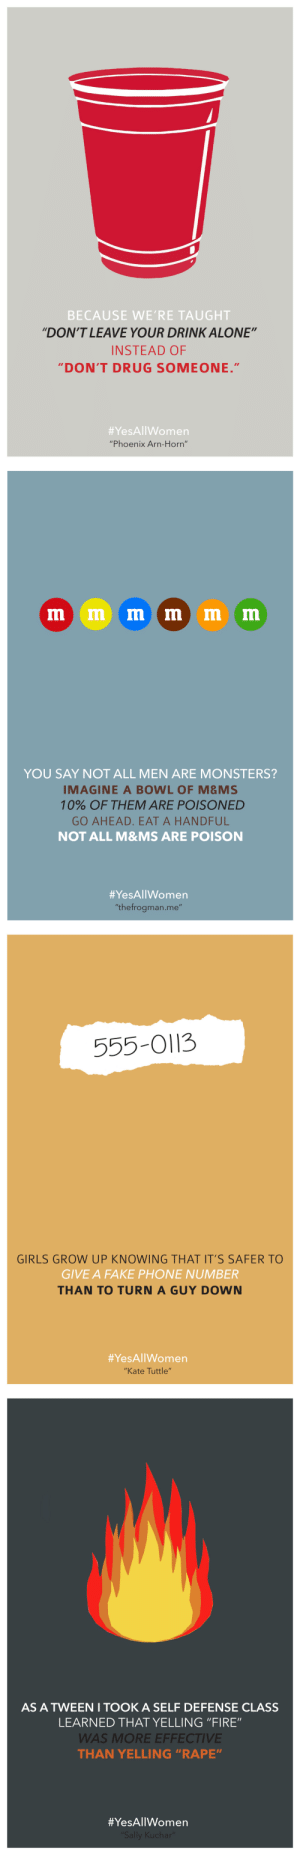 """co-gi-to:  untamedcomets:  This is important  IMPORTANT. BOOST. : BECAUSE WE'RE TAUGHT  """"DON'T LEAVE YOUR DRINK ALONE""""  INSTEAD OF  DON'T DRUG SOMEONE.""""  #YesAllWomen  """"Phoenix Arn-Horn""""   YOU SAY NOT ALL MEN ARE MONSTERS?  IMAGINE A BOWL OF M&MS  10% OF THEM ARE POISONED  GO AHEAD. EAT A HANDFUL  NOT ALL M&MS ARE POISON  #YesAllWomen  """"thefrogman.me""""   555-O113  GIRLS GROW UP KNOWING THAT IT'S SAFER TO  GIVE A FAKE PHONE NUMBER  THAN TO TURN A GUY DOWN  #YesAllWomen  """"Kate Tuttle""""   AS A TWEEN I TOOK A SELF DEFENSE CLASS  LEARNED THAT YELLING """"FIRE""""  WAS MORE EFFECTIVE  THAN YELLING """"RAPE""""  co-gi-to:  untamedcomets:  This is important  IMPORTANT. BOOST."""